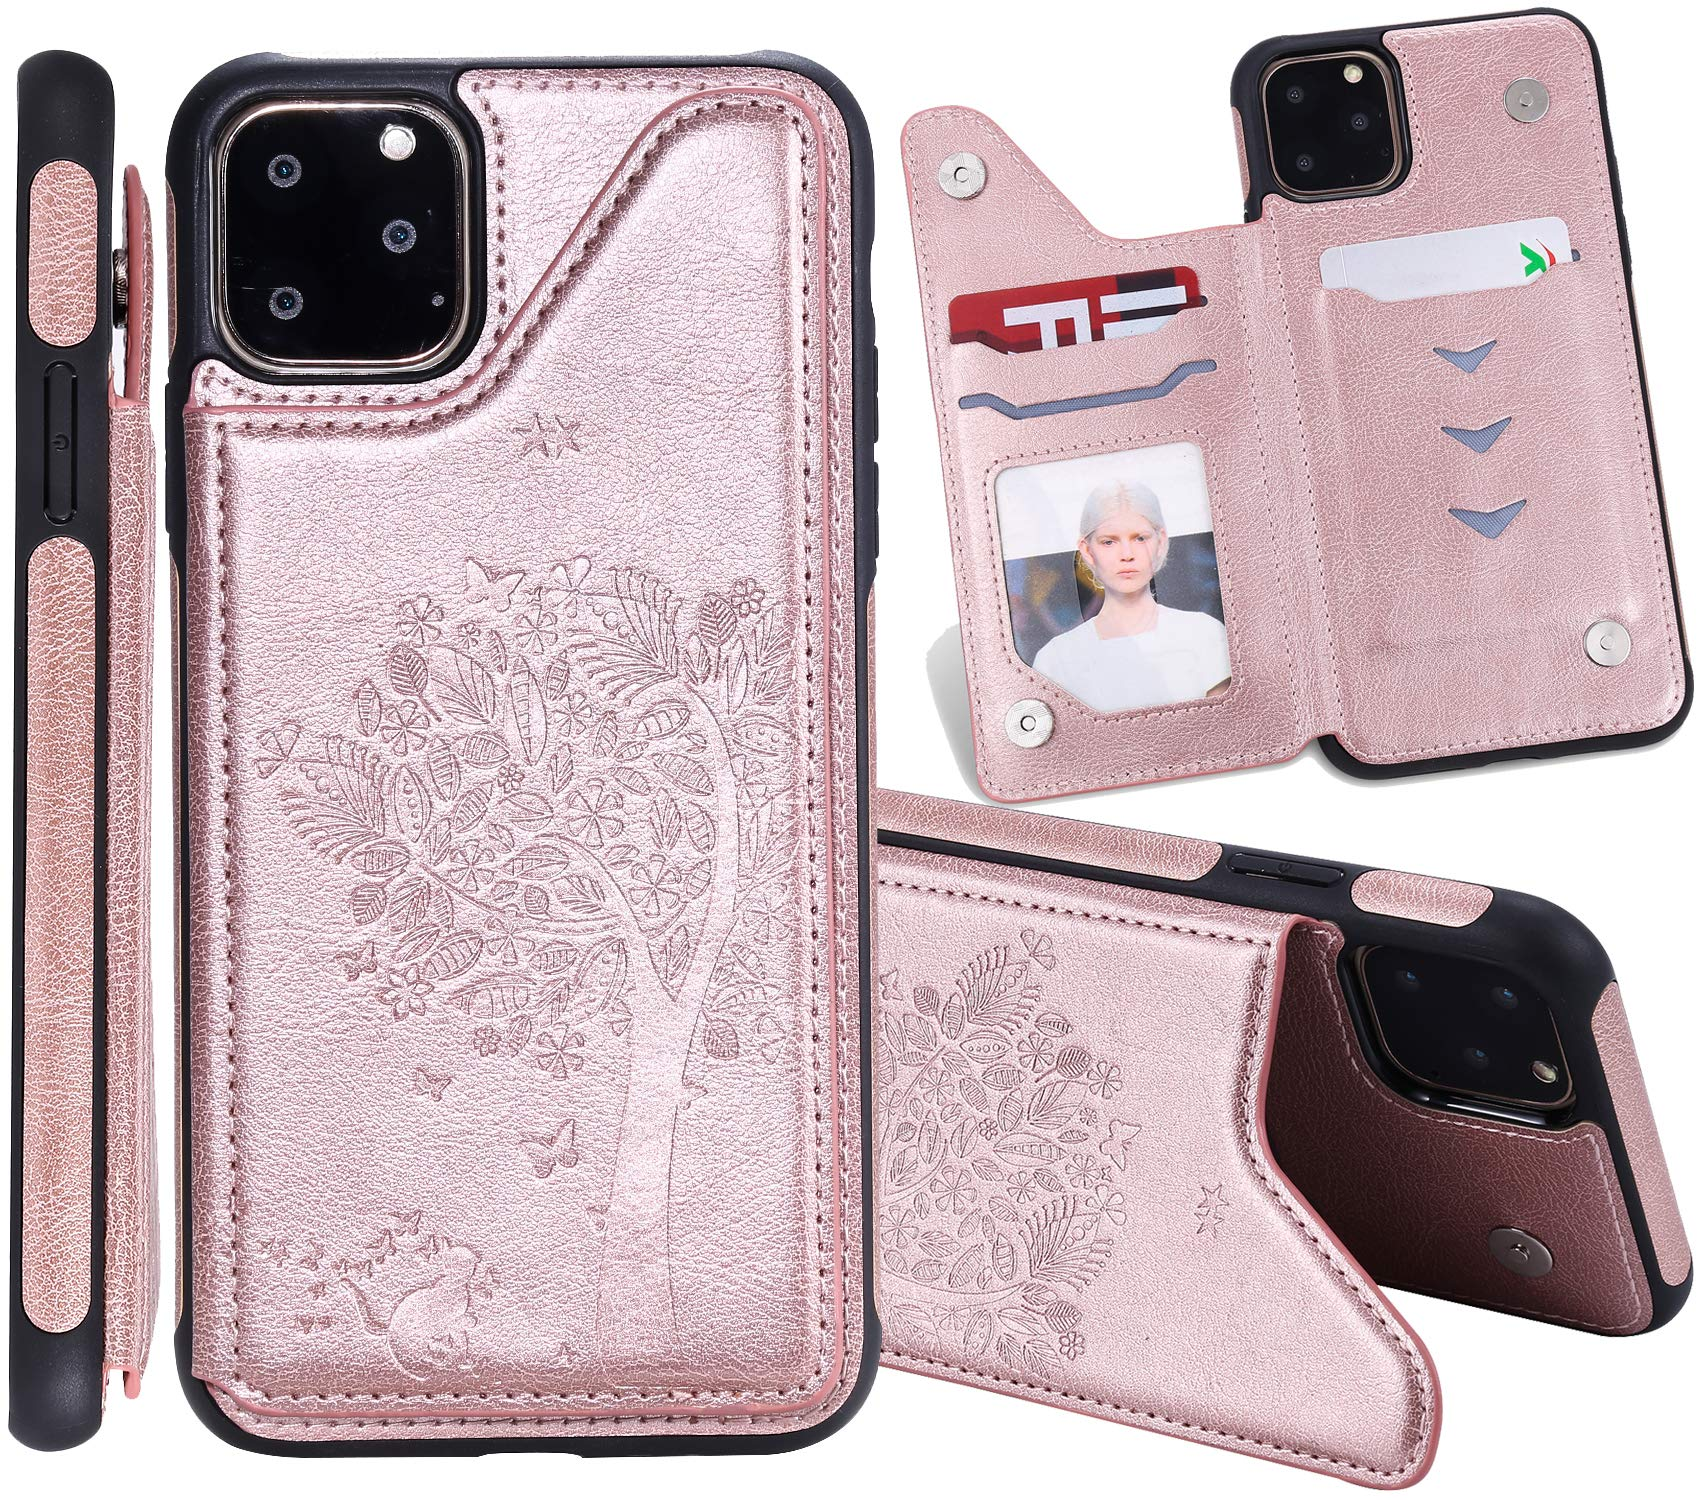 iPhone 2019 6.5 Inch Case, iPhone 11 Pro Max Case, Futanwei Cat & Tree Embossed Magnetic Leather Card Slots Wallet Slim Lightweight Shockproof Defender Phone Case for iPhone 11 Pro Max, Rose Gold by Futanwei